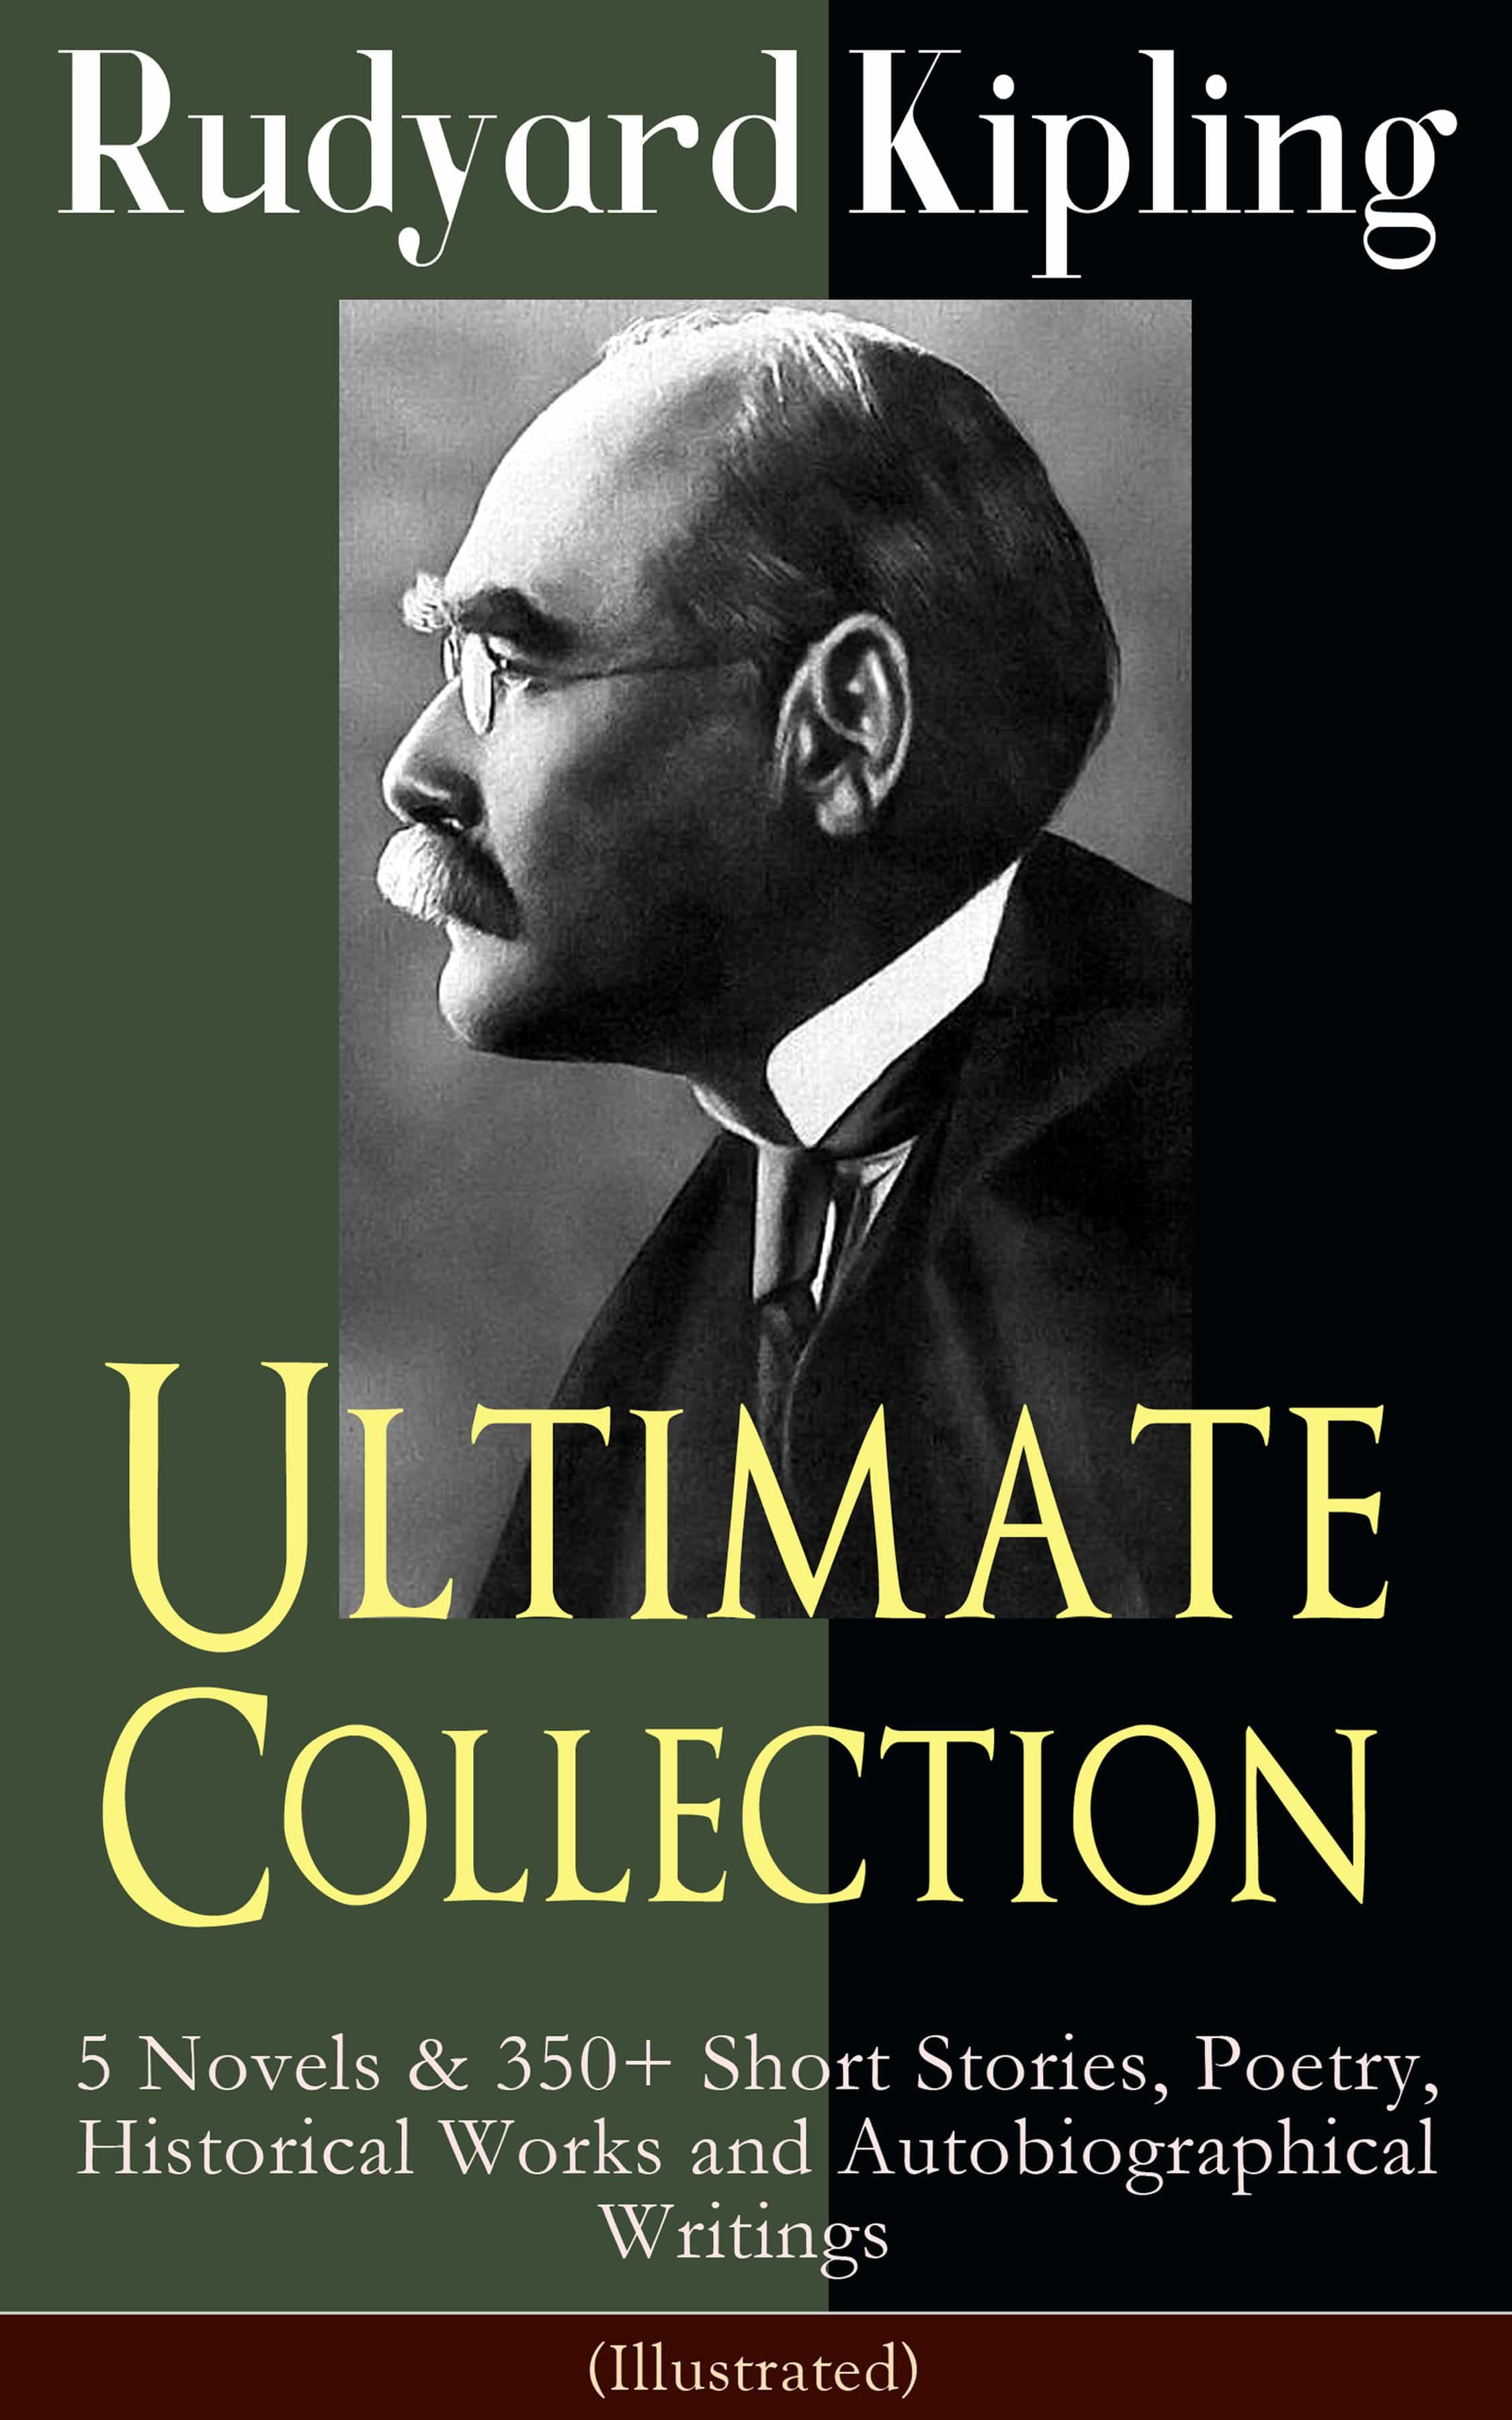 e82b9b2f7 rudyard kipling ultimate collection: 5 novels & 350+ short stories, poetry,  historical